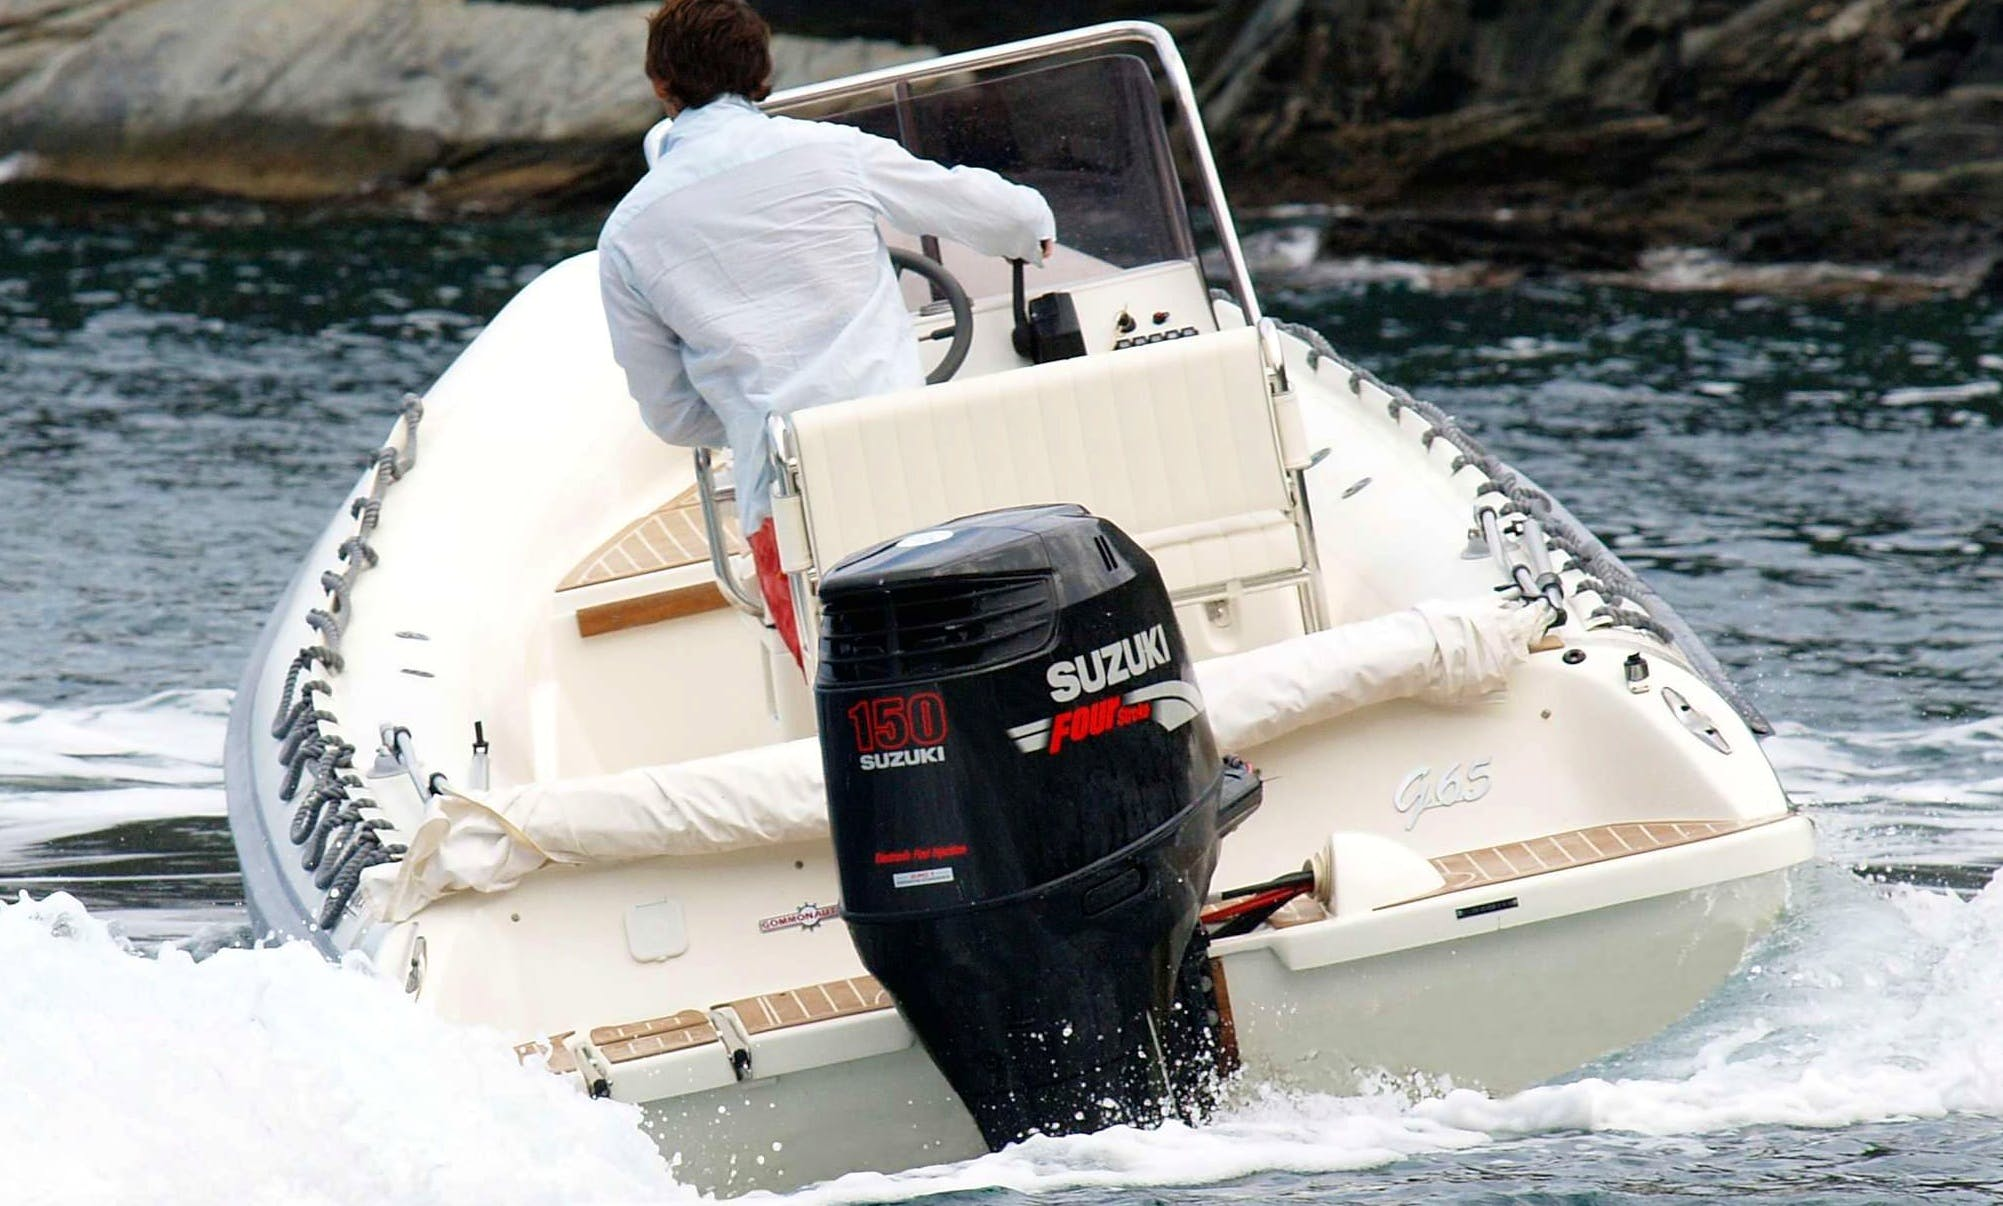 Have our captains take you out for fun on this (RIB) Rigid Inflatable Boat Rental in Reggio Calabria, Italy